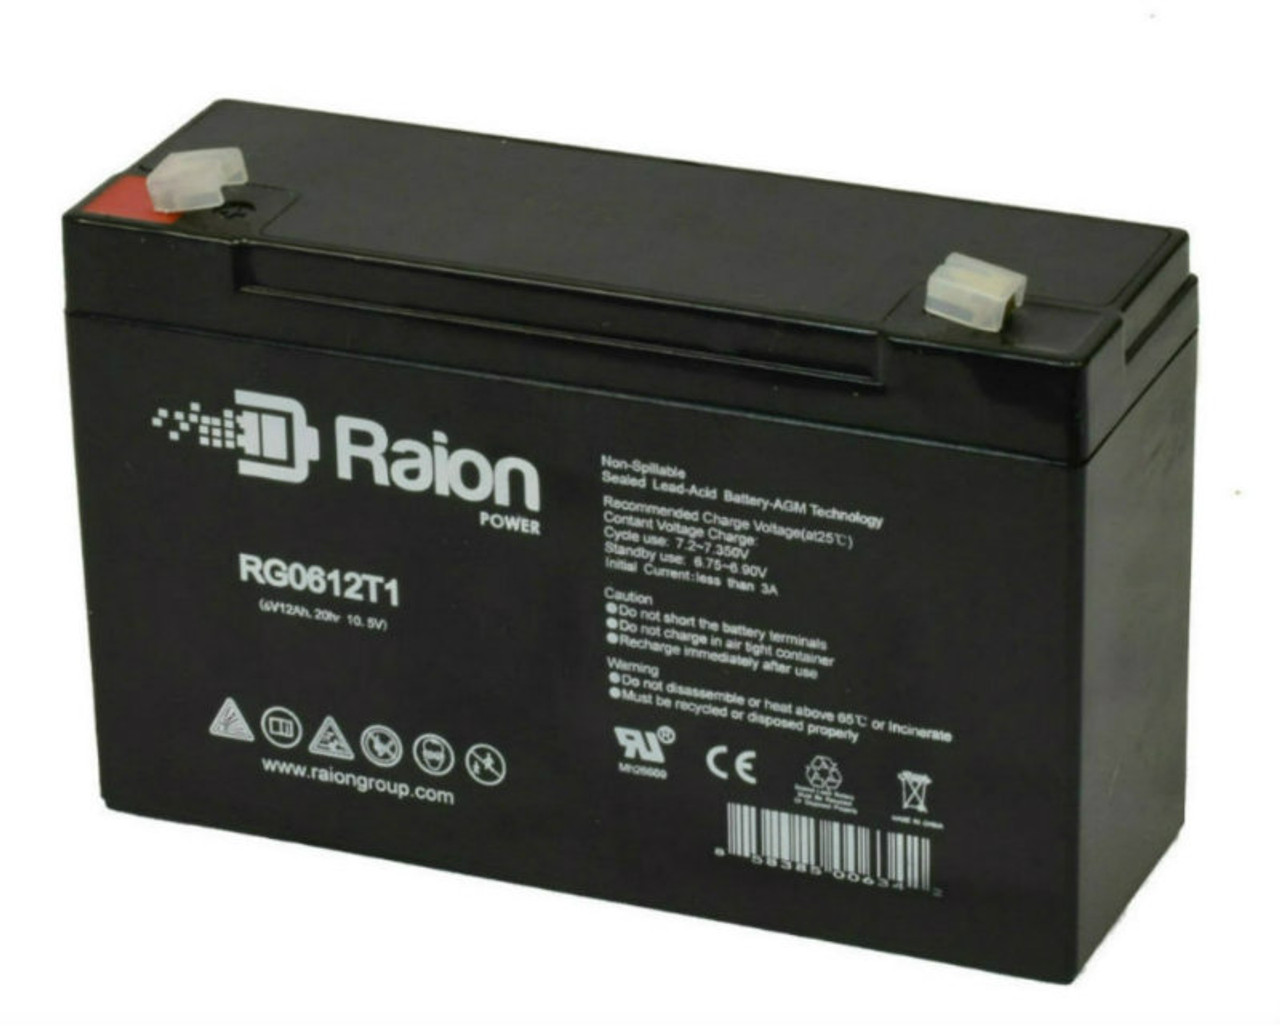 Raion Power RG06120T1 Replacement Battery Pack for Mule 6GC028L emergency light